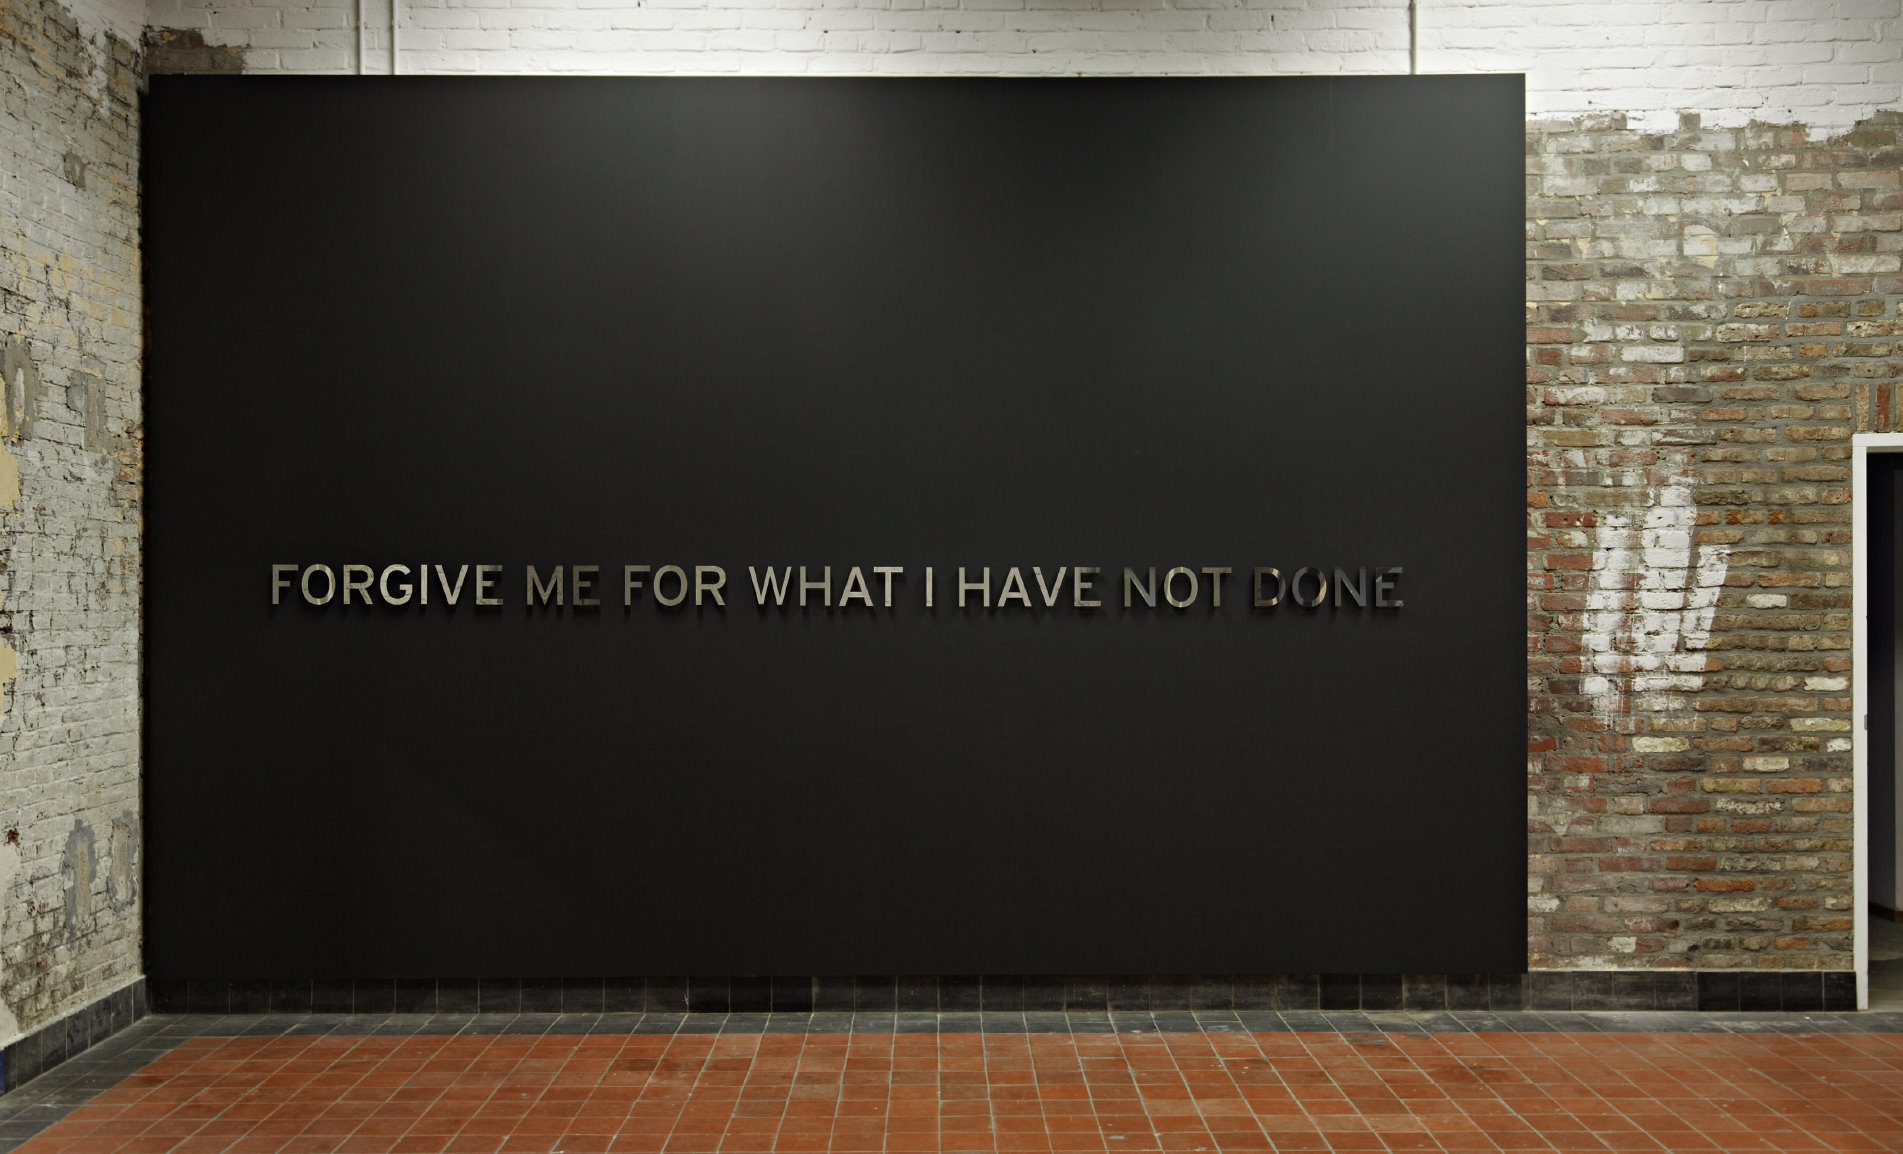 Forgive me for what I have not done: new Otto Berchem work commissioned by H+F Collection